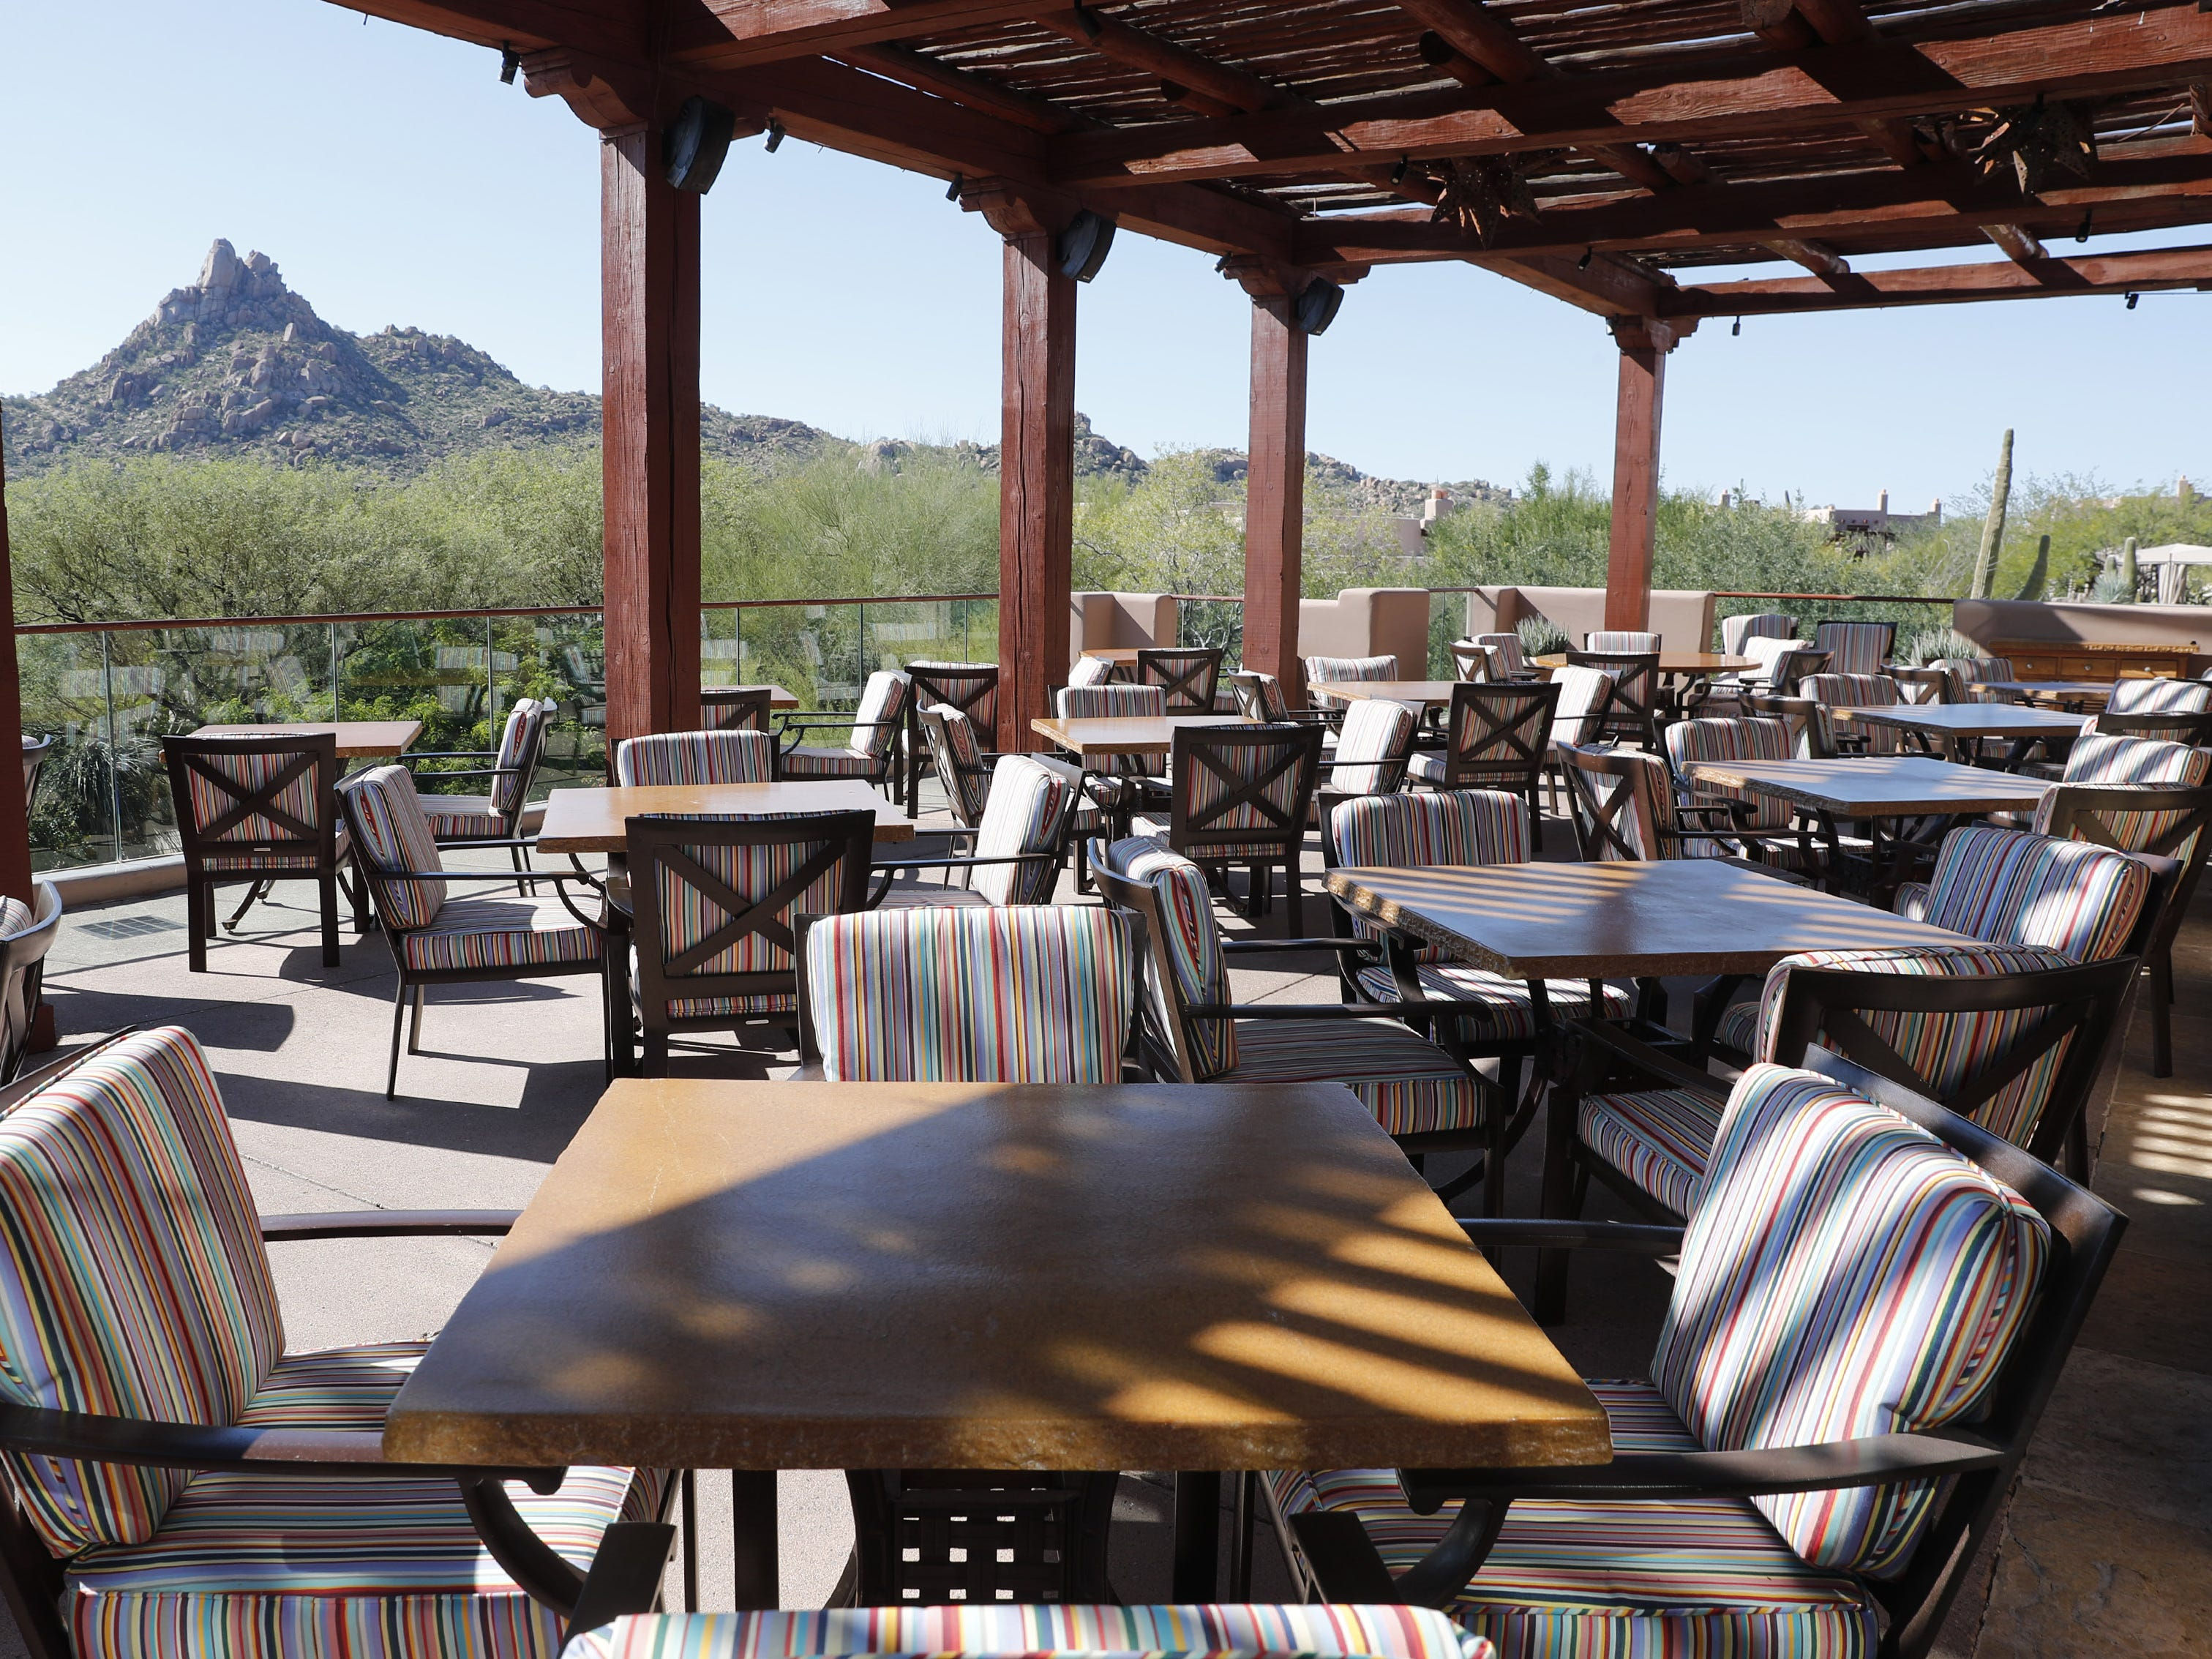 Patio of Talavera at the Four Seasons in Scottsdale, Ariz. Oct. 30, 2018.